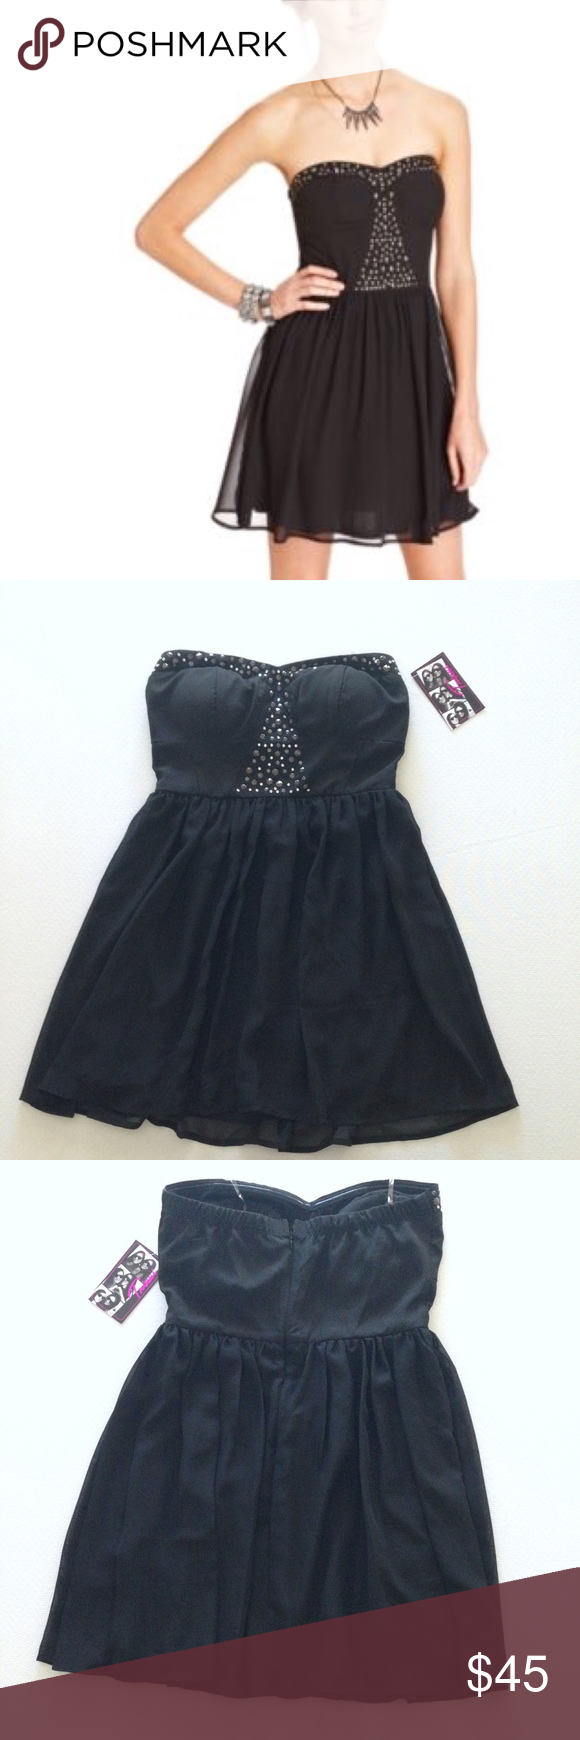 """Trixxi Studded Strapless Dress Black NWT Trixxi Studded Strapless Dress Black. A-Line Silhouette, Fully Lined, Metallic Studded Bust, Back Concealed Zipper Closure, Stretch Band Chest, Lightly Padded Chest, Chest 15"""", Waist 14"""", Length 24"""". Excellent Condition - NWT - No Flaws No Fading. Retail $60.00 #0223170218 ✨Please keep in mind that measurements are provided only as a guide and are approximate. Color appearance may vary depending on your monitor settings. Trixxi Dresses Strapless"""